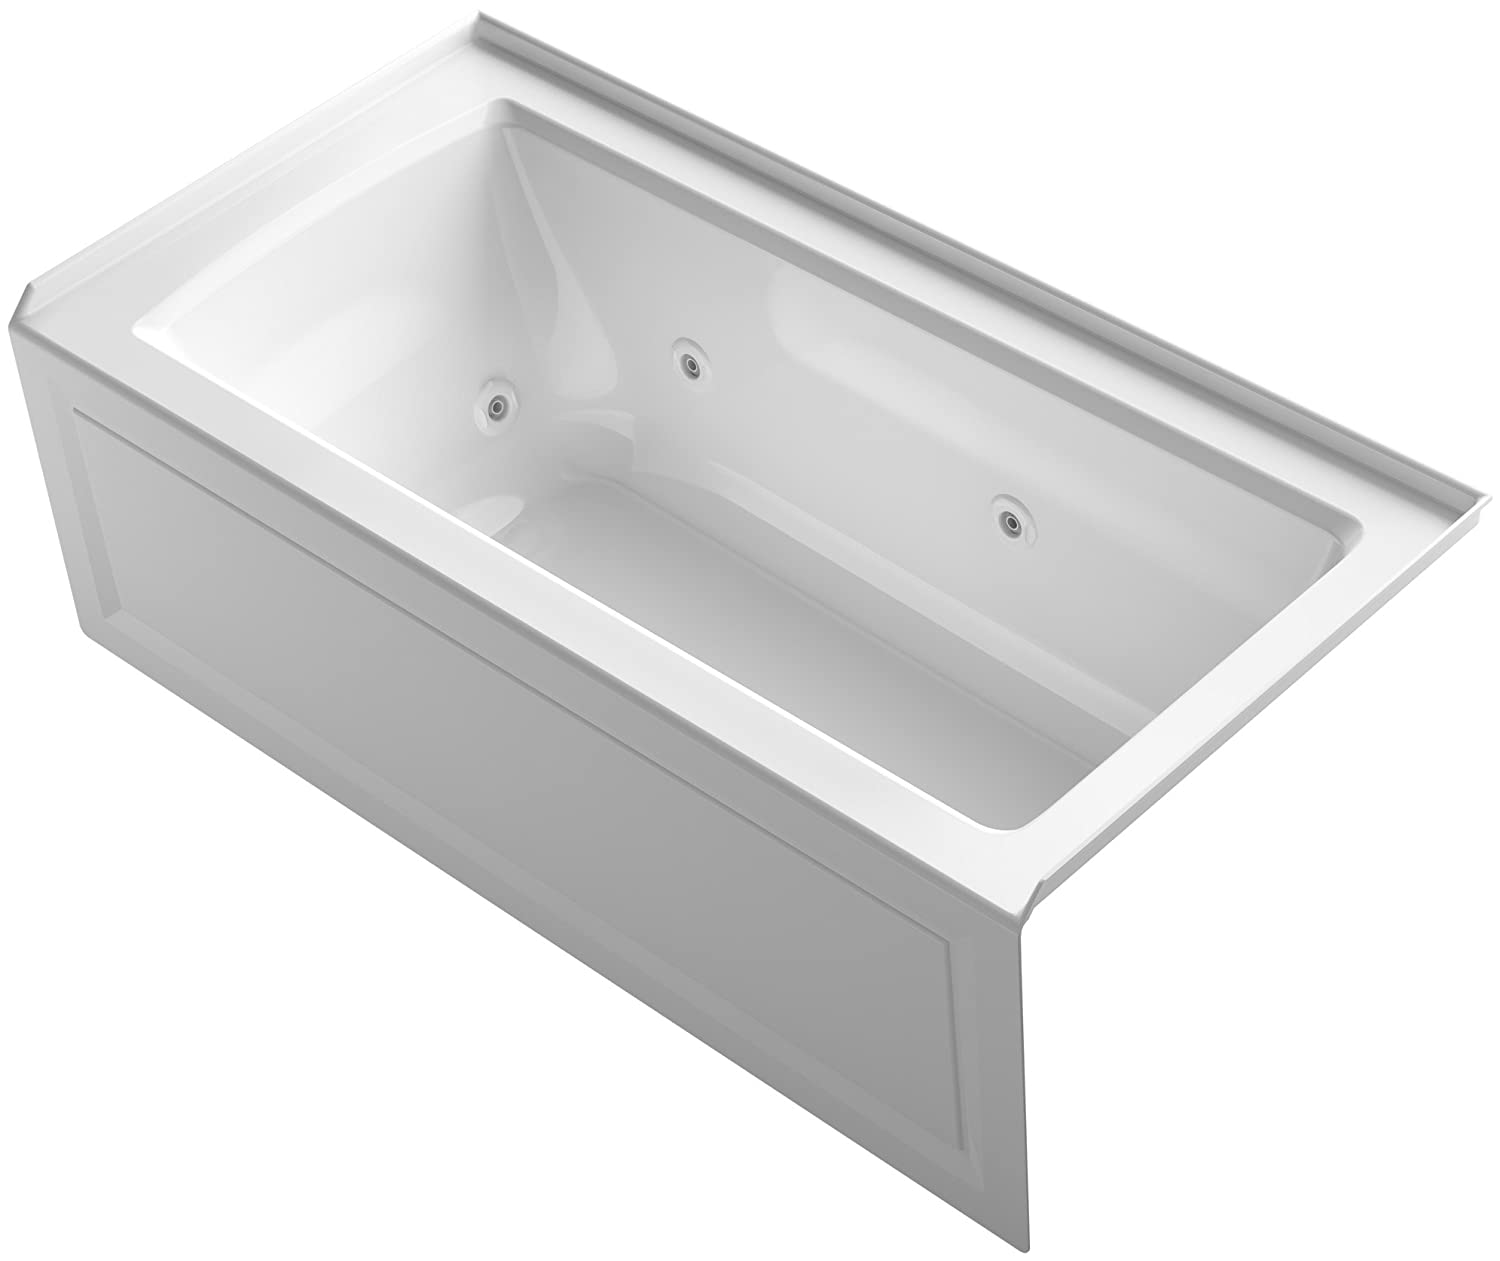 """KOHLER K-1947-RA-0 Archer 60"""" x 30"""" Alcove Whirlpool with Integral Apron, Tile Flange and Right-Hand Drain, White"""